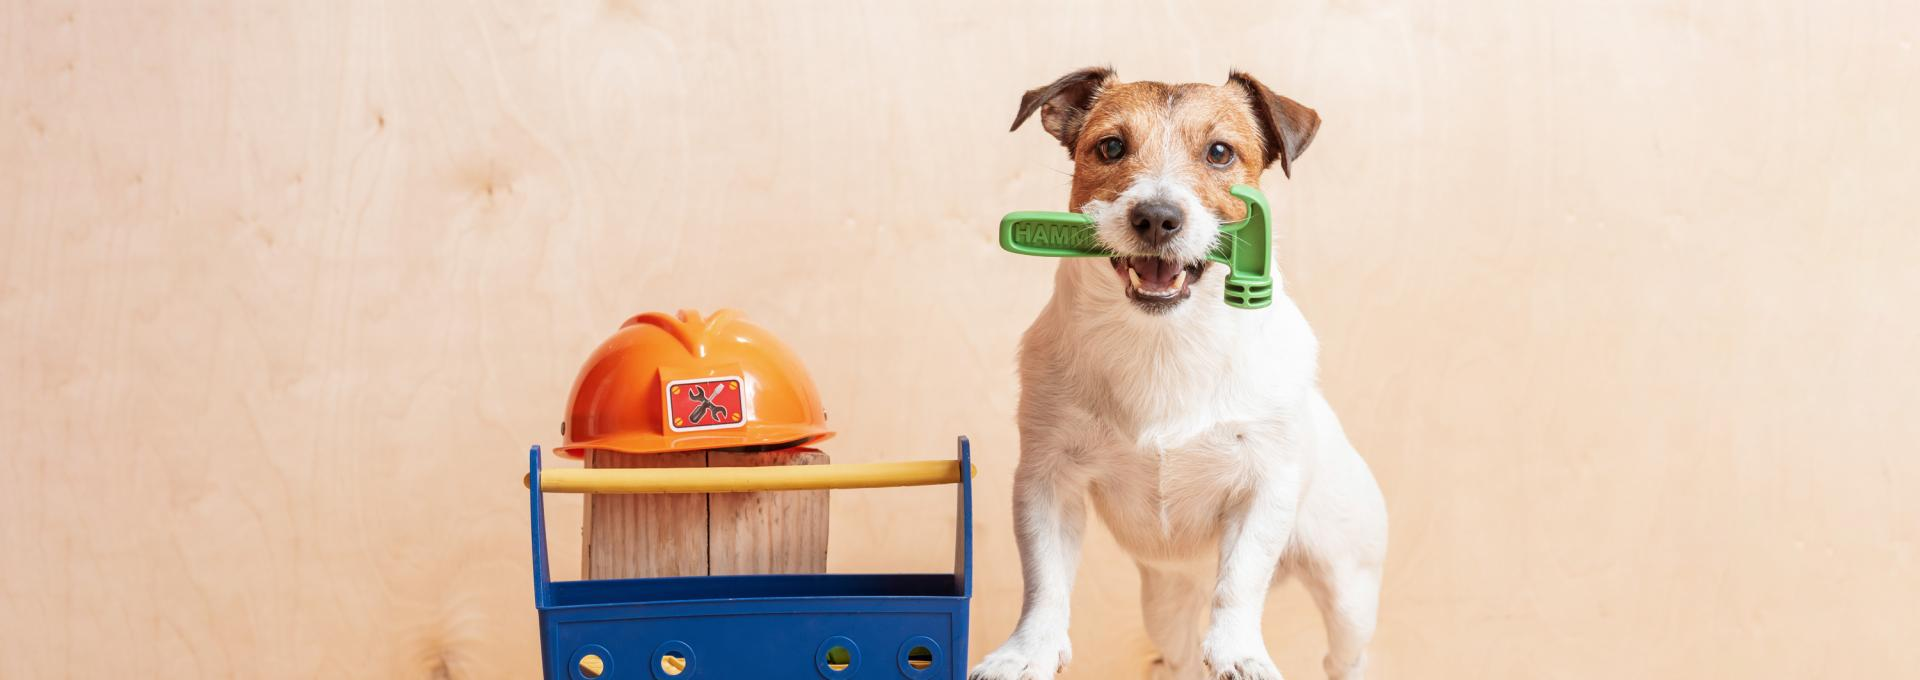 dog next to toolbox holding hammer in its jaw